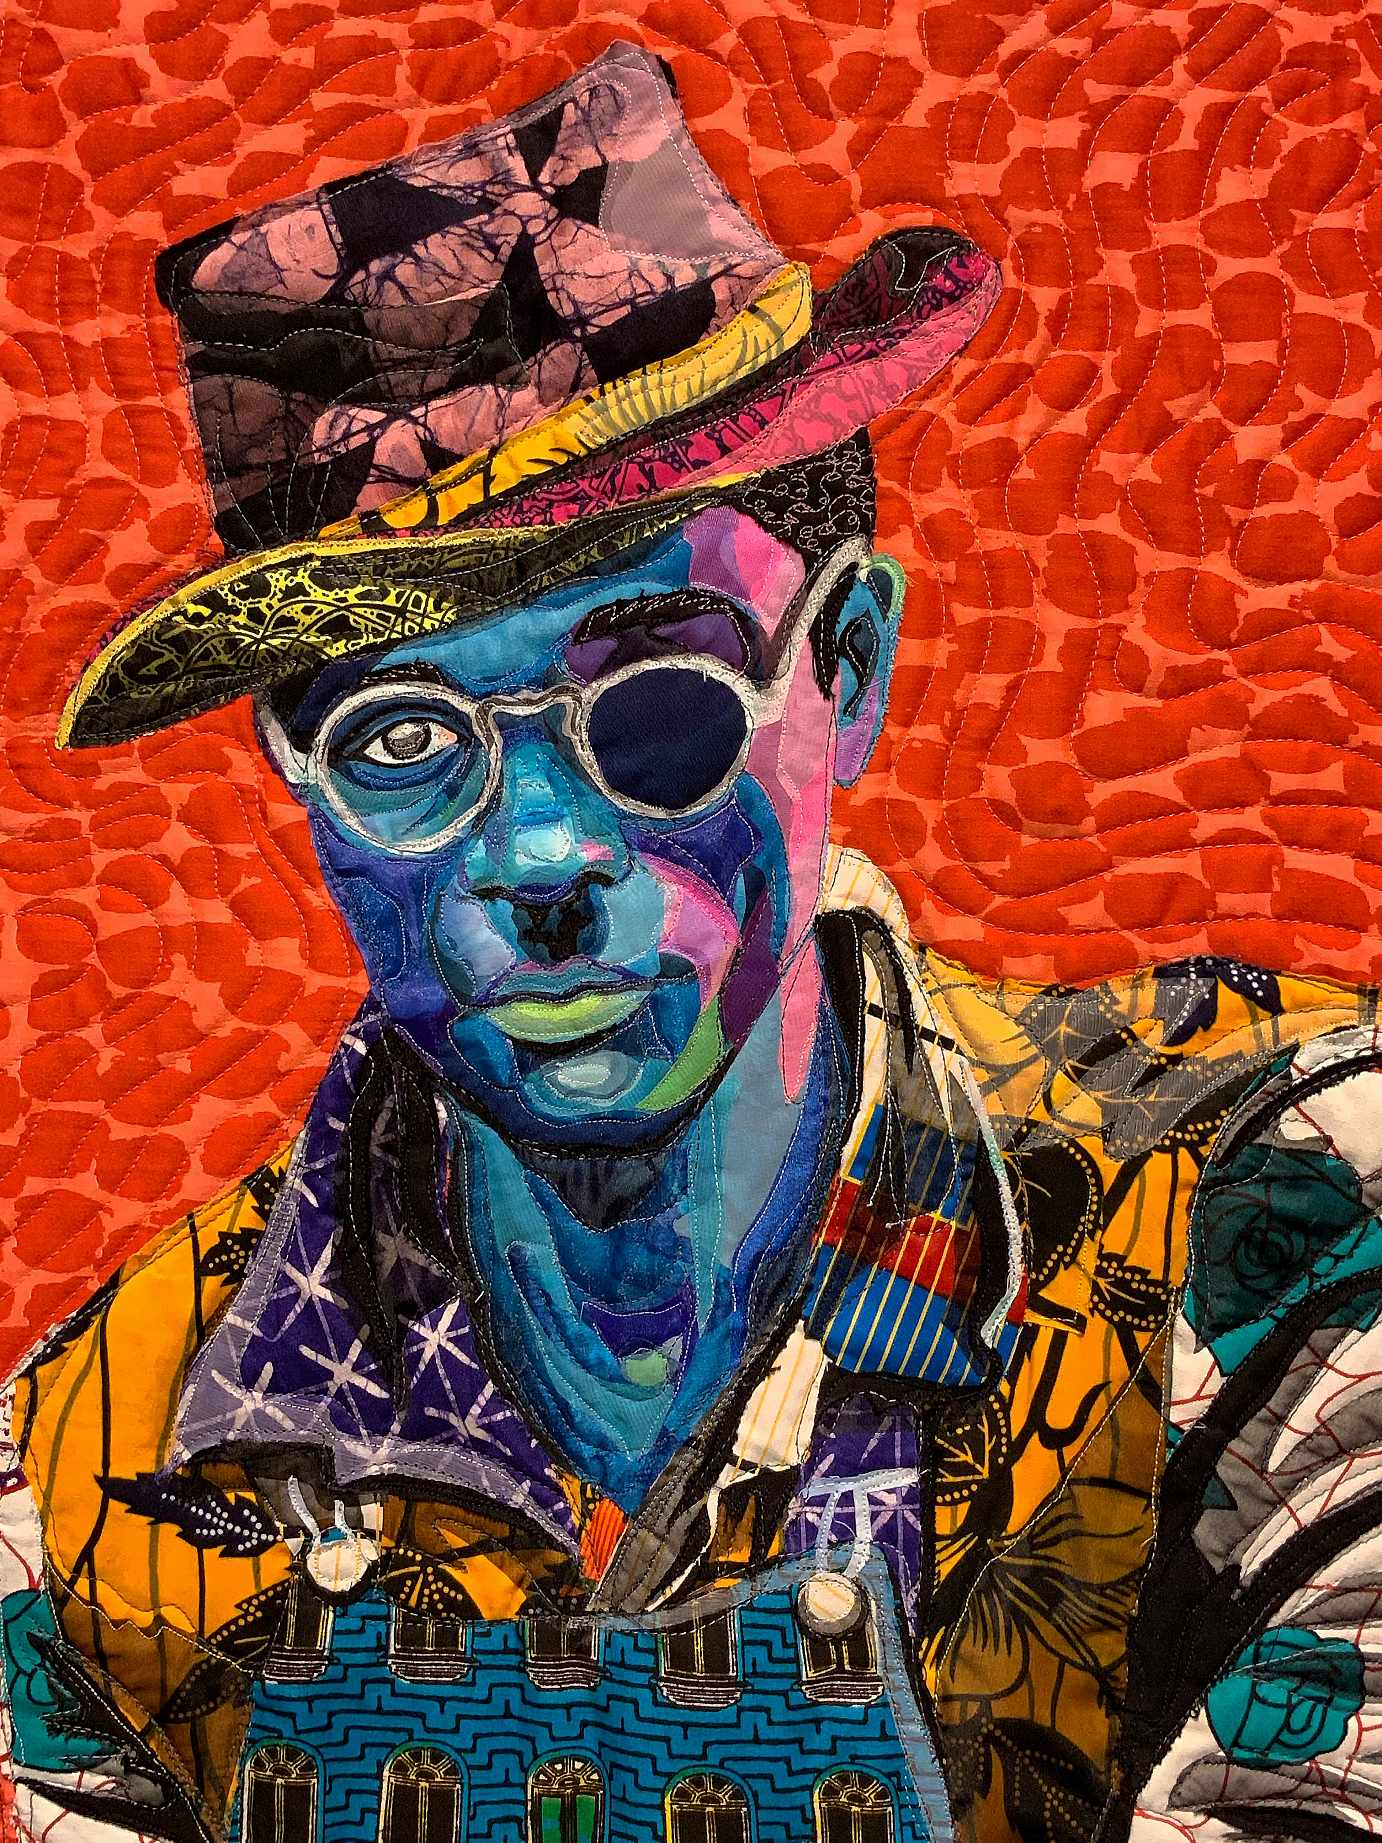 African Fabrics to Form Nuanced Portraits